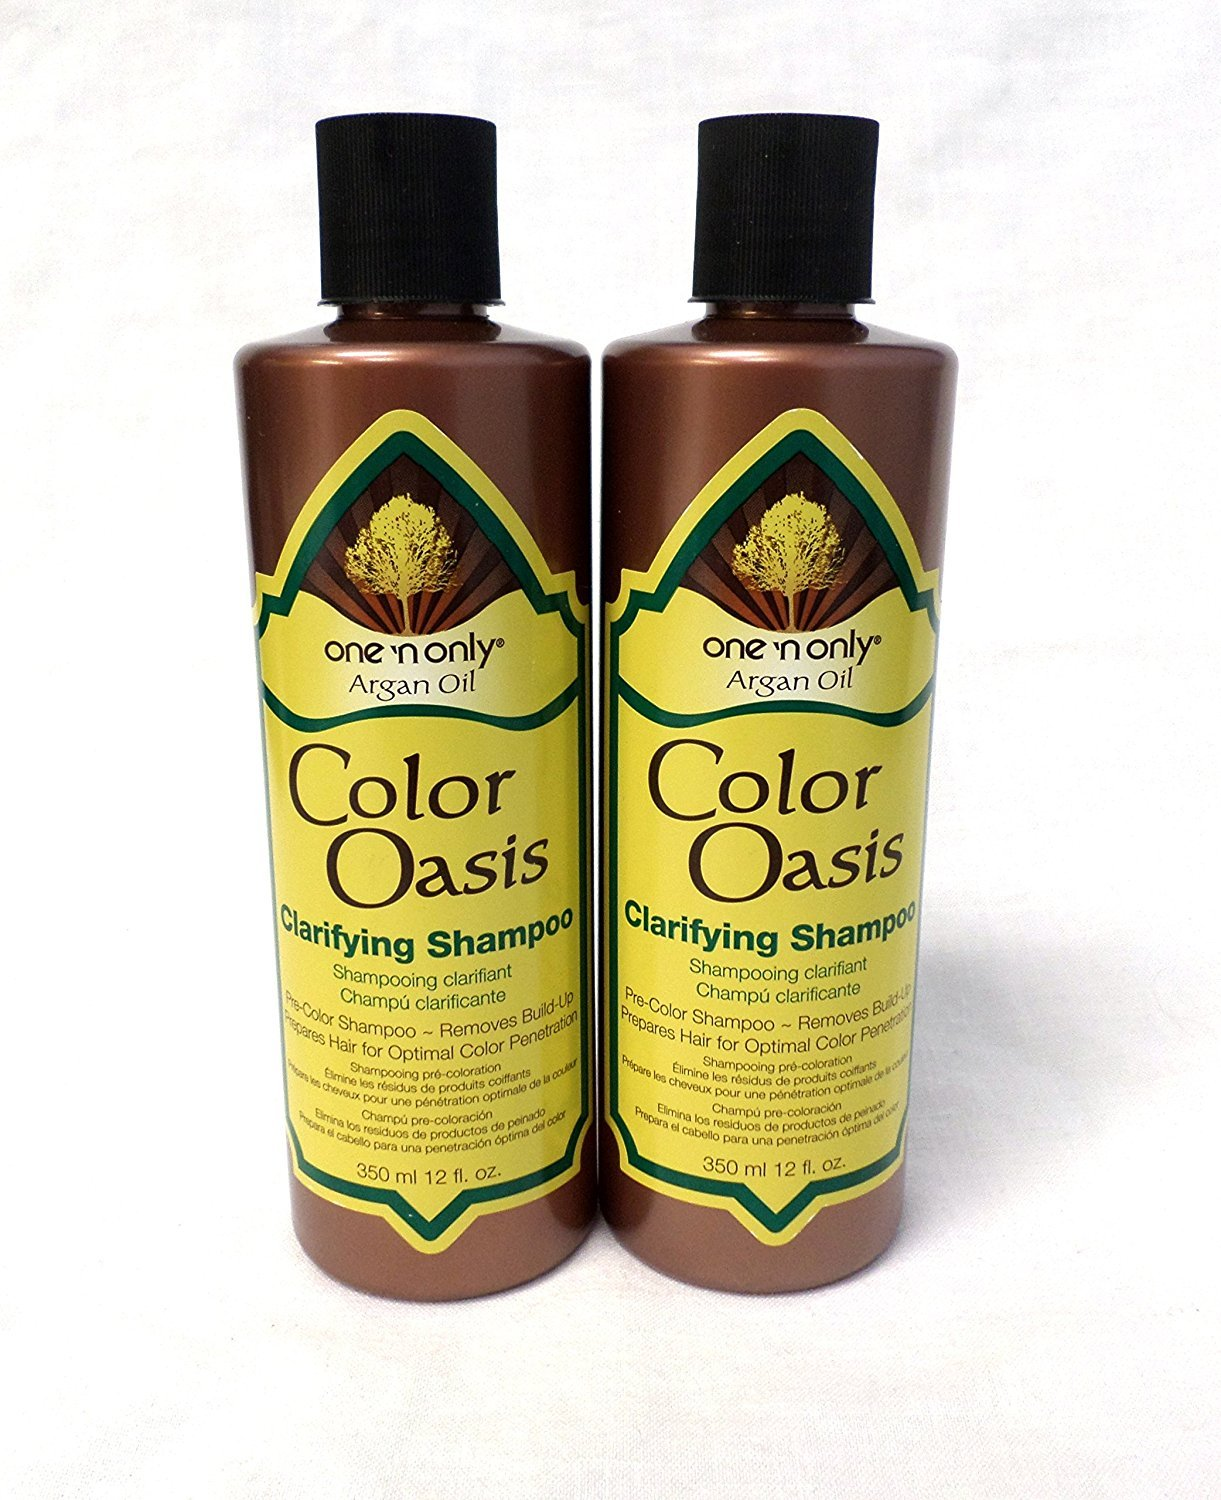 One N Only Argan Oil Shampoo Color Oasis Clarifying 12oz (2 Pack)